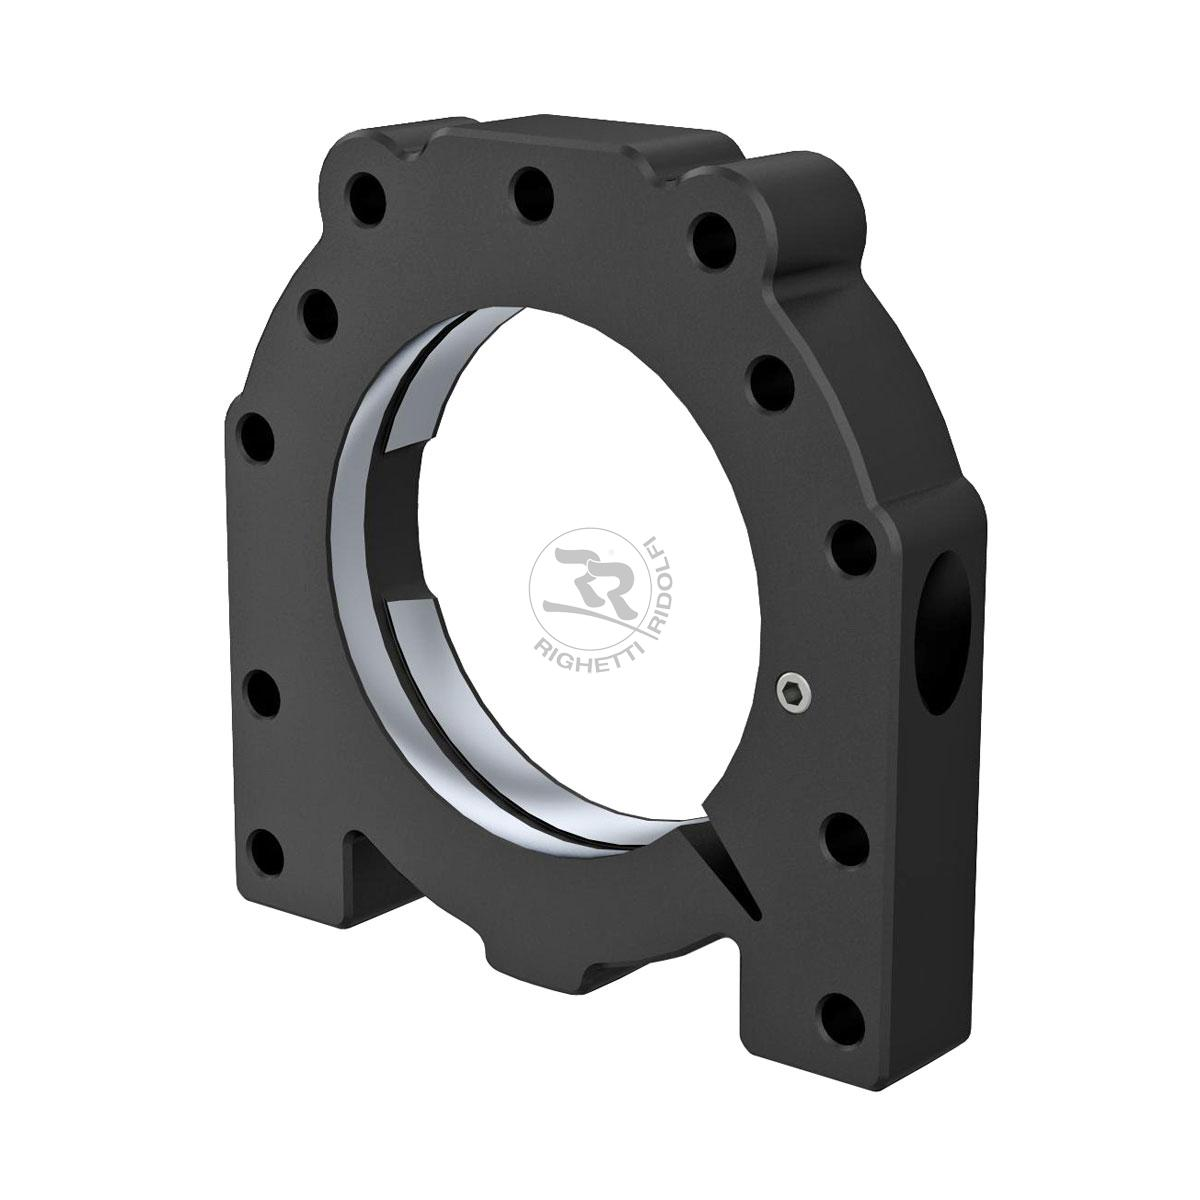 ADJUSTABLE ALU.HOUSING 80mm, BLACK (2013)